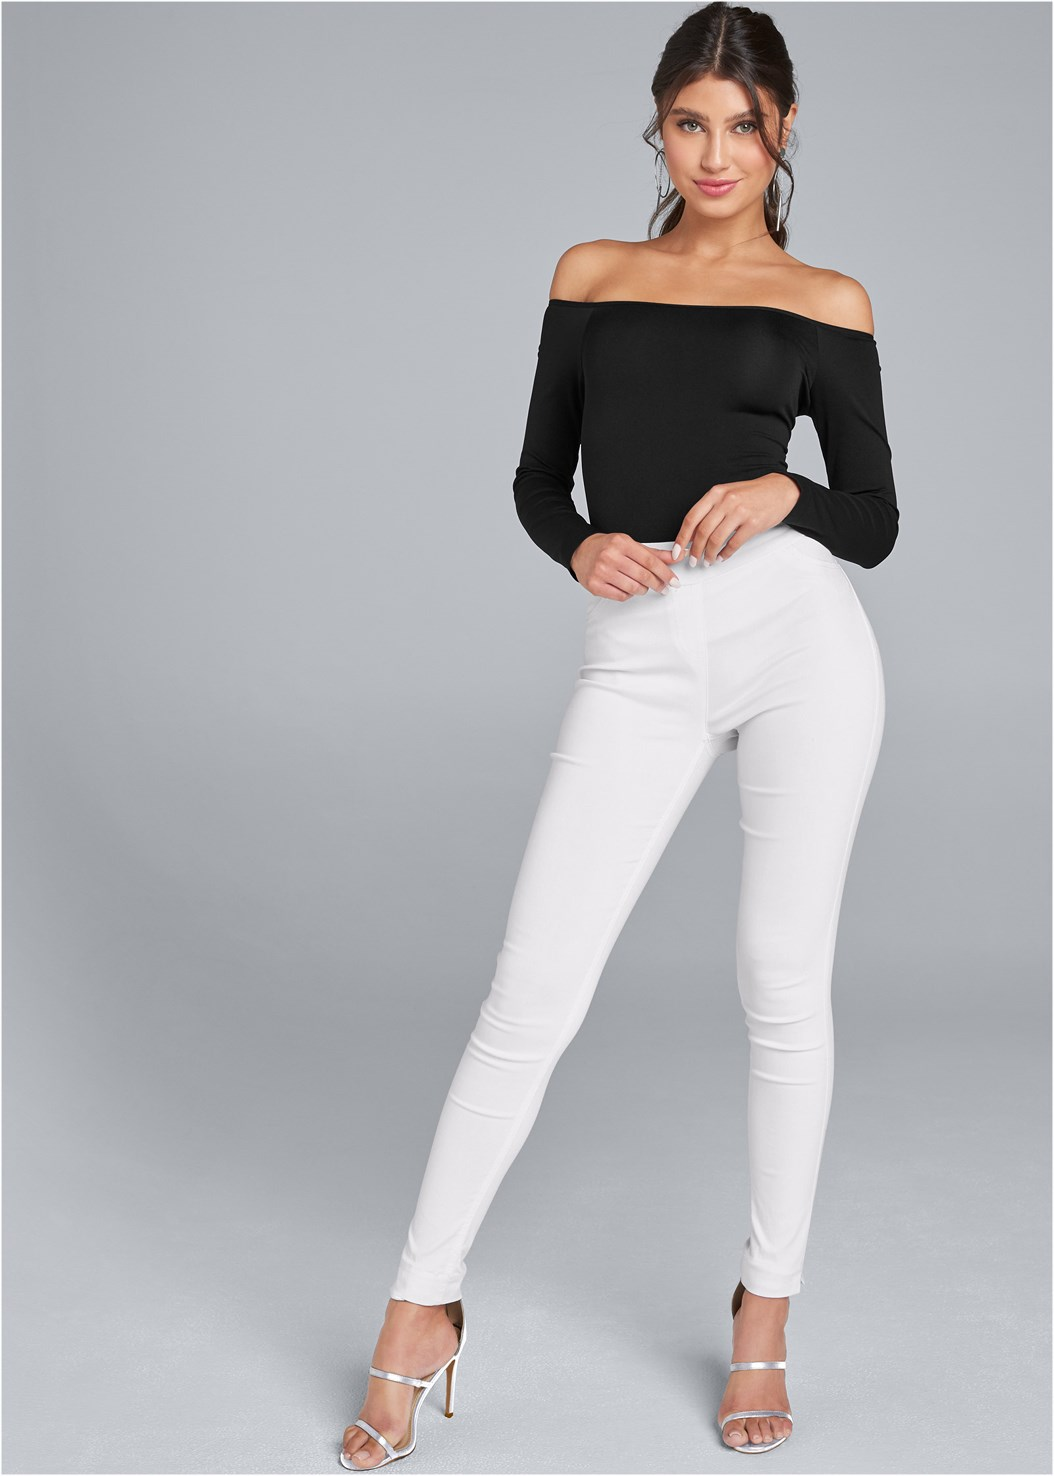 Mid Rise Slimming Stretch Jeggings,Off The Shoulder Top,Strappy Detail Top,High Heel Strappy Sandals,Wicker Straw Bag